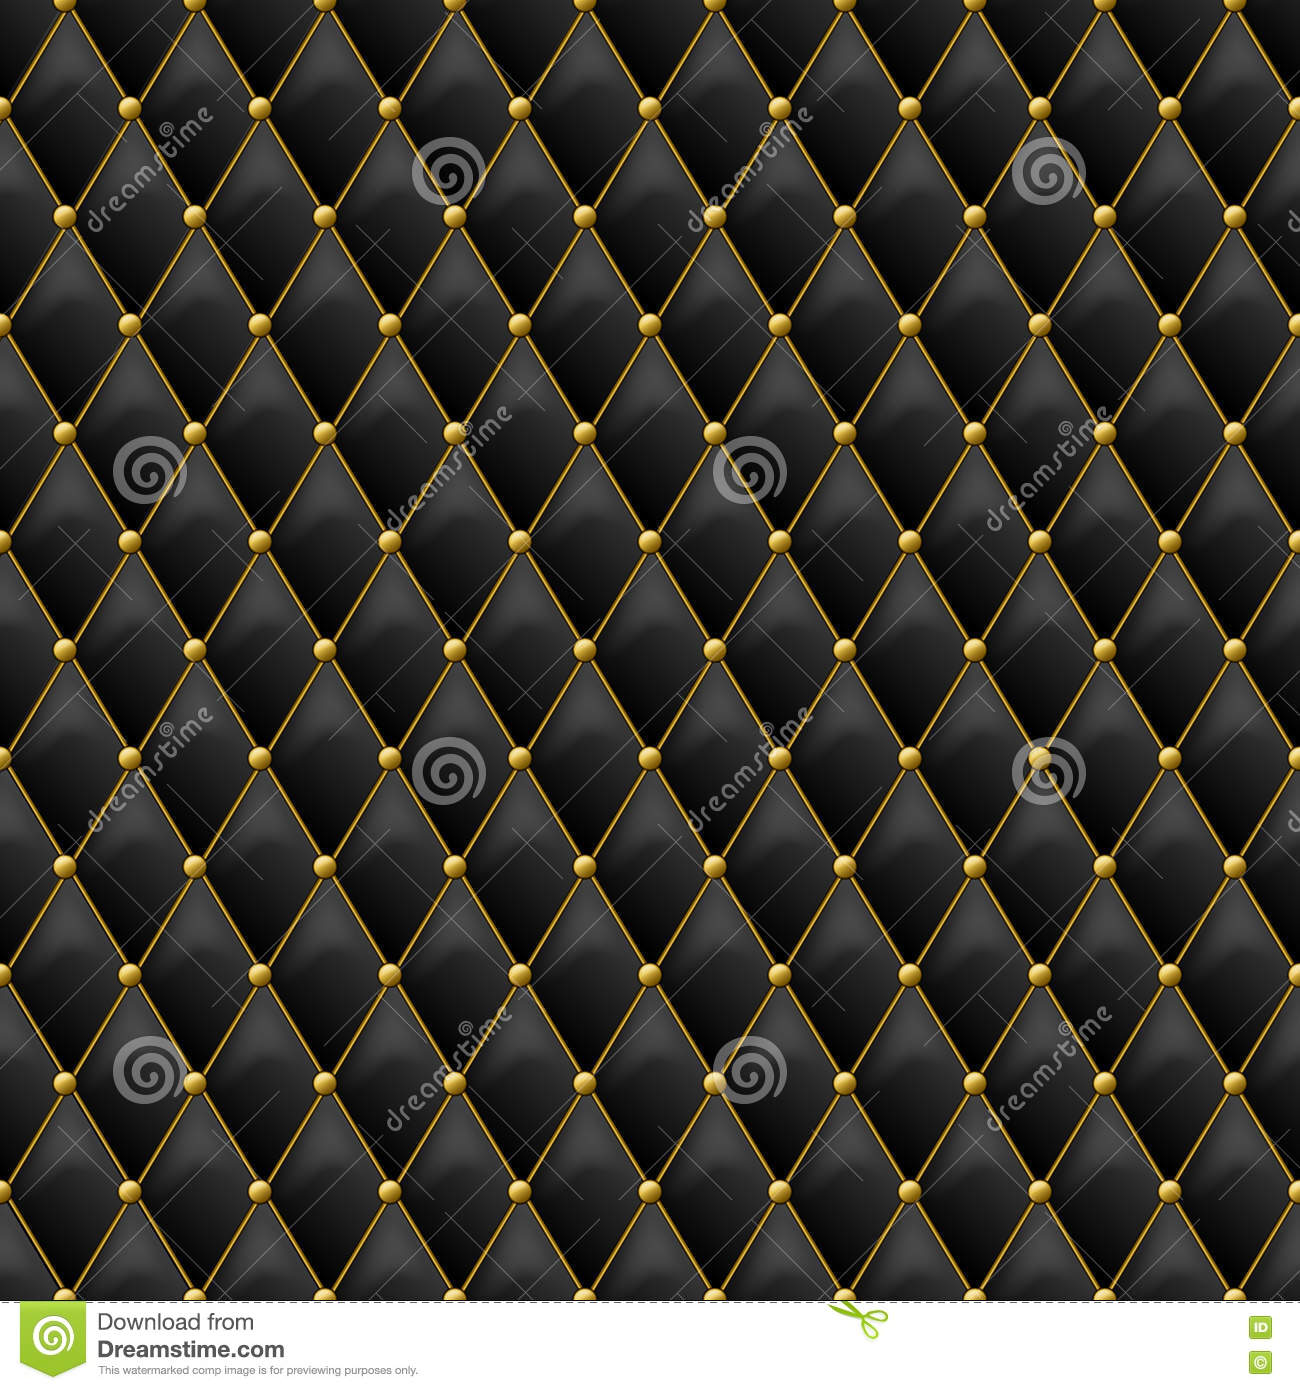 Stock Image Blue Metal Tile Roof Image28671681 as well Classic Jdm Does Widebody The Best Who Else Thinks So Photo Maiham Media Revvolution   Revvolution Of The Rockies Modlife 67671 together with Photo moreover 291305 besides Stock Illustration Seamless Black Leather Texture Gold Metal Details Vector Leather Background Golden Buttons Luxury Textile Design Image74249688. on rivet wallpaper